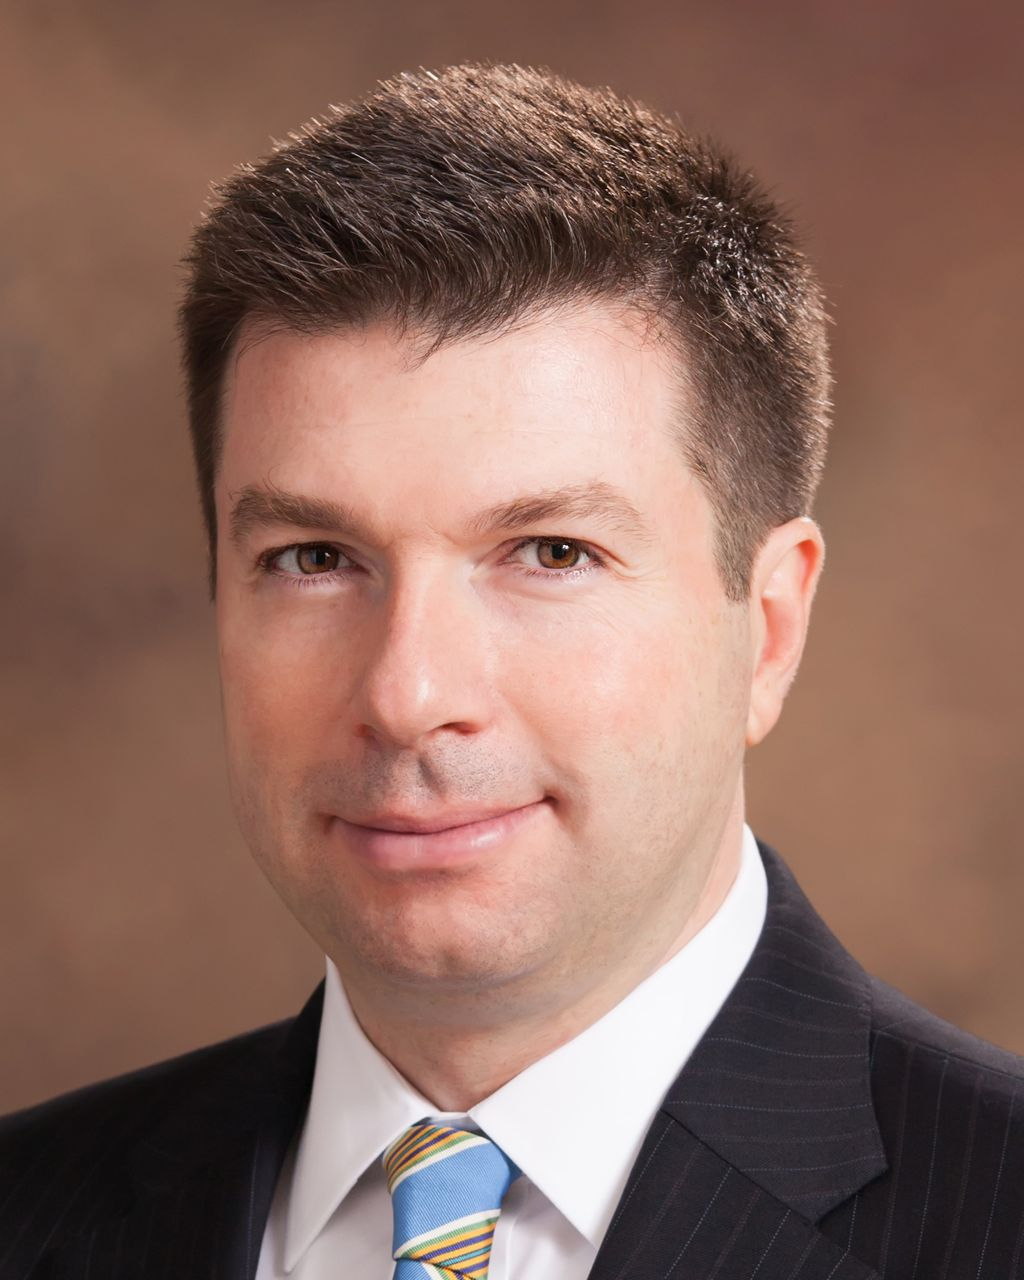 Patrick Cote, financial advisor Bellingham MA